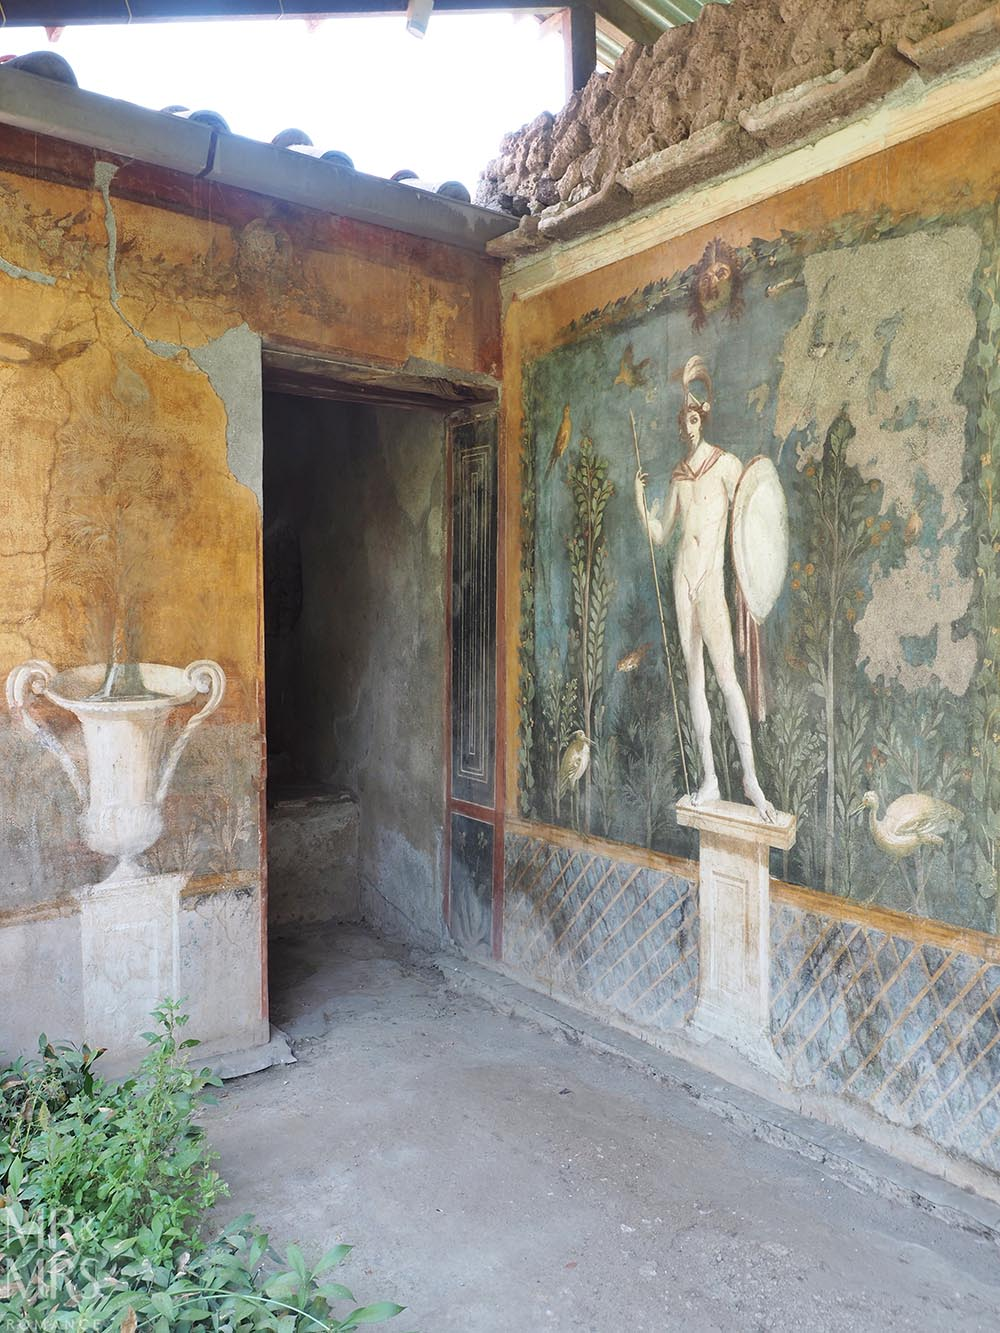 Do you need a tour guide in Pompeii? Frescos in a villa